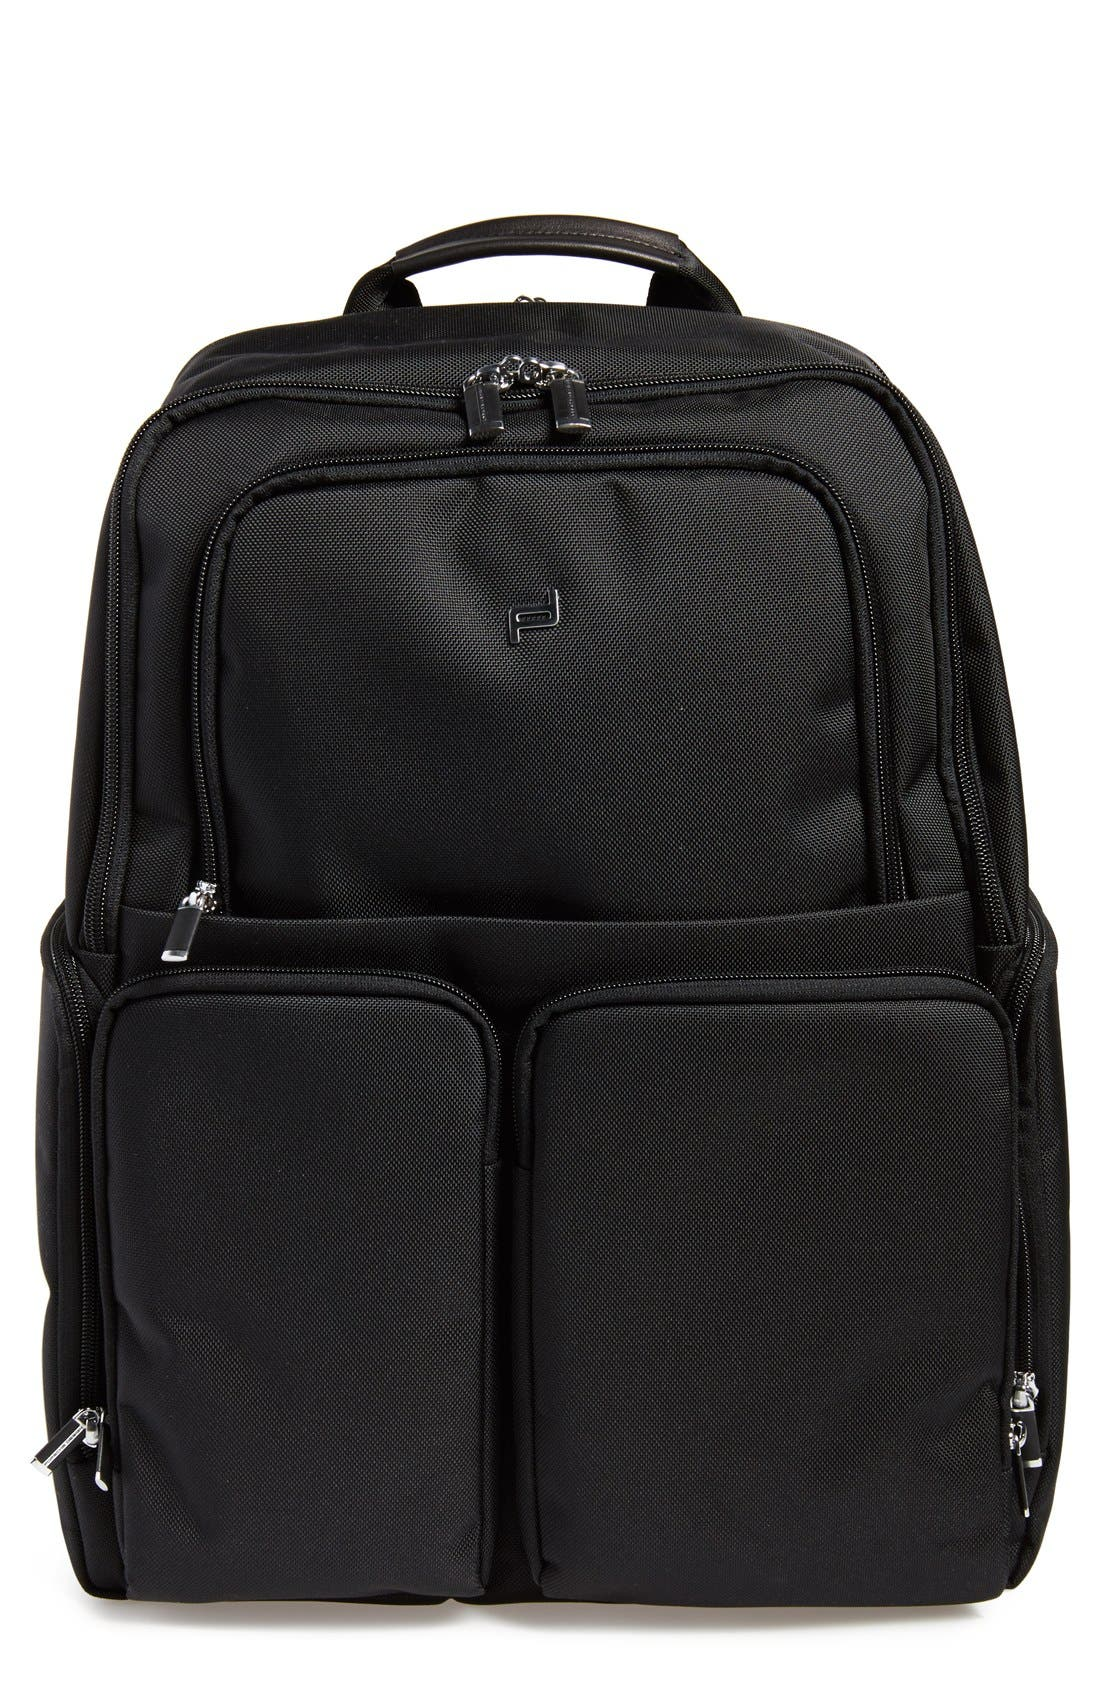 Main Image - Porsche Design 'Roadster 3.0' Backpack